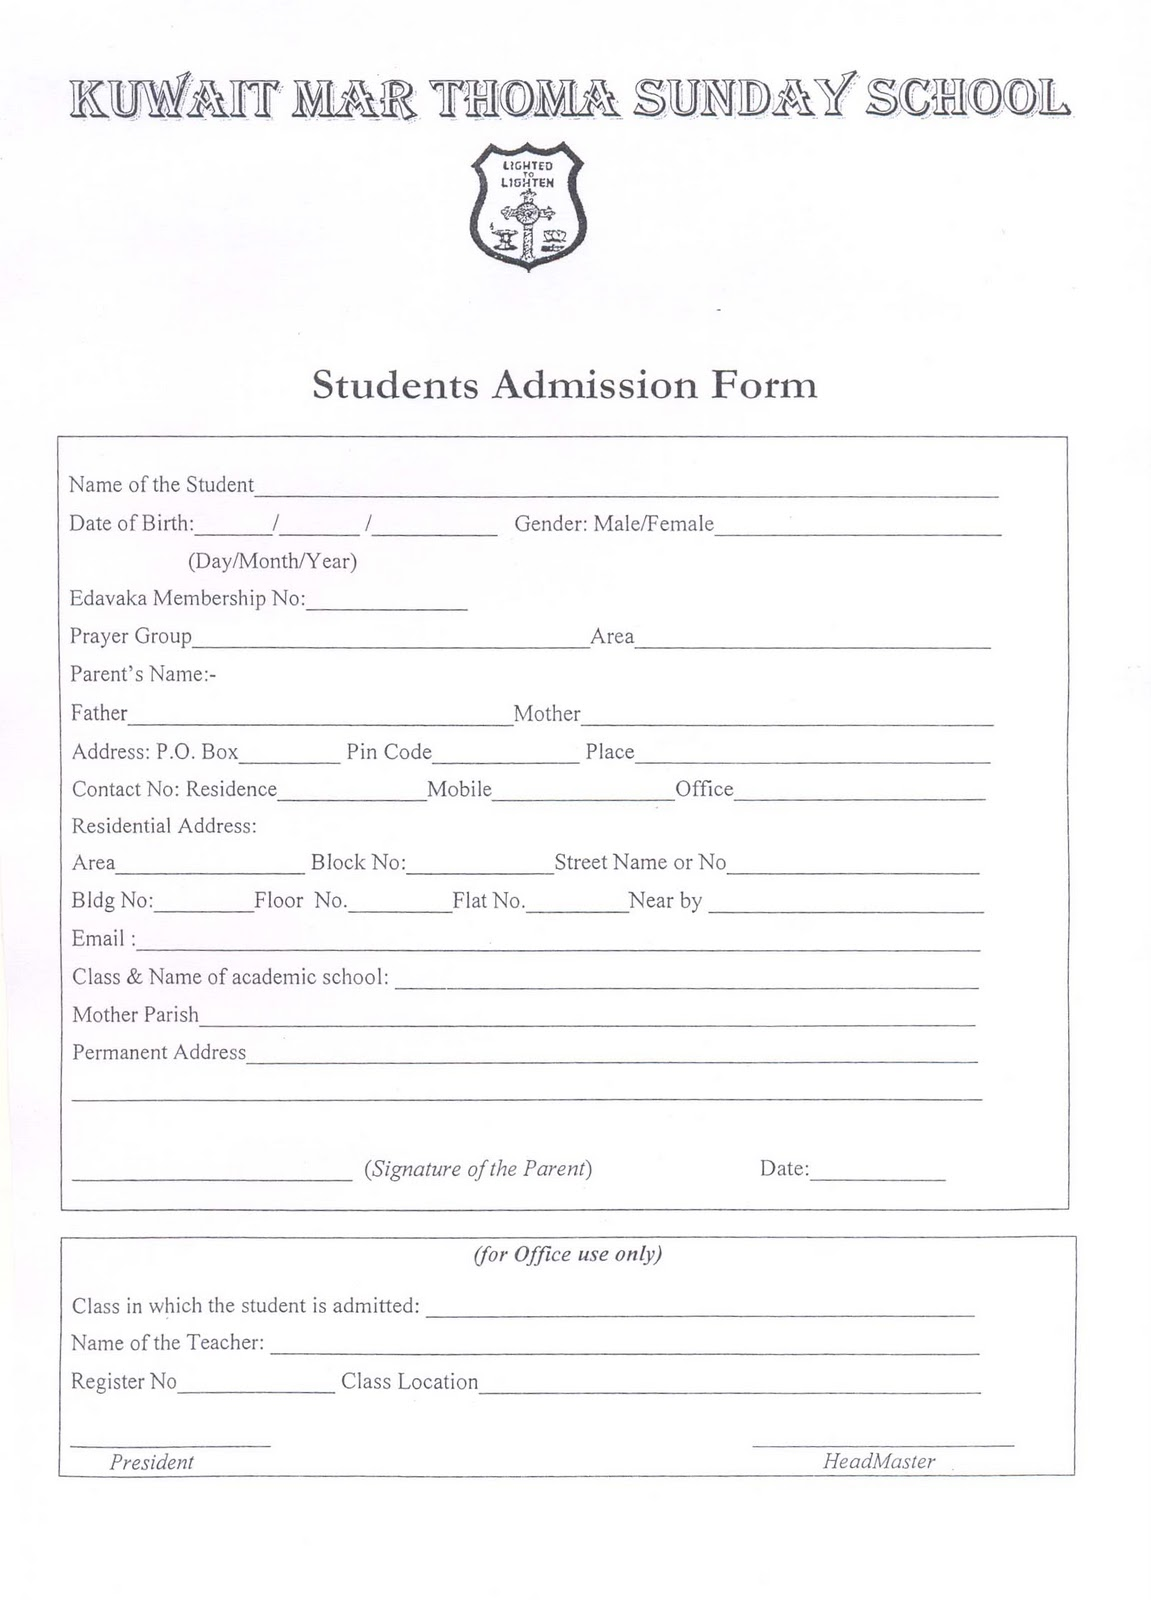 Sunday School Admission Form  Admission Form School